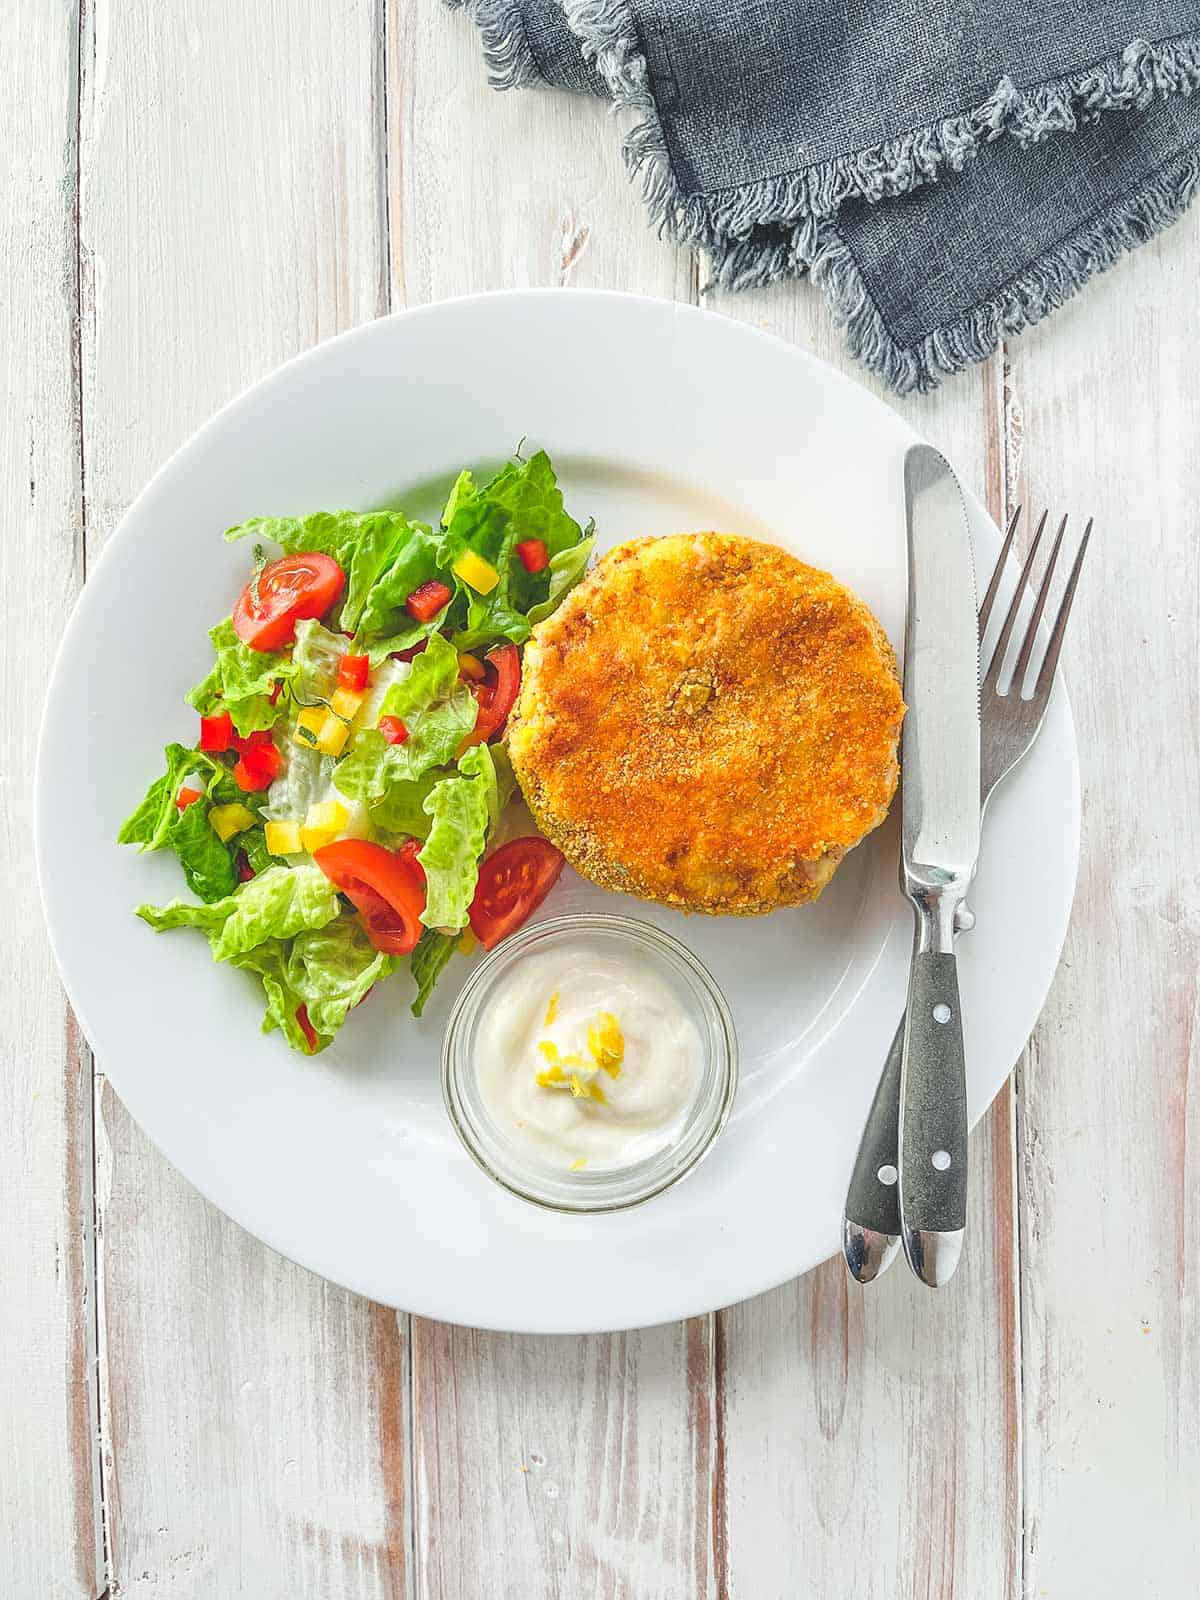 A white plate with a tuna & Sweetcorn fish cake and some salad on a white wooden table.